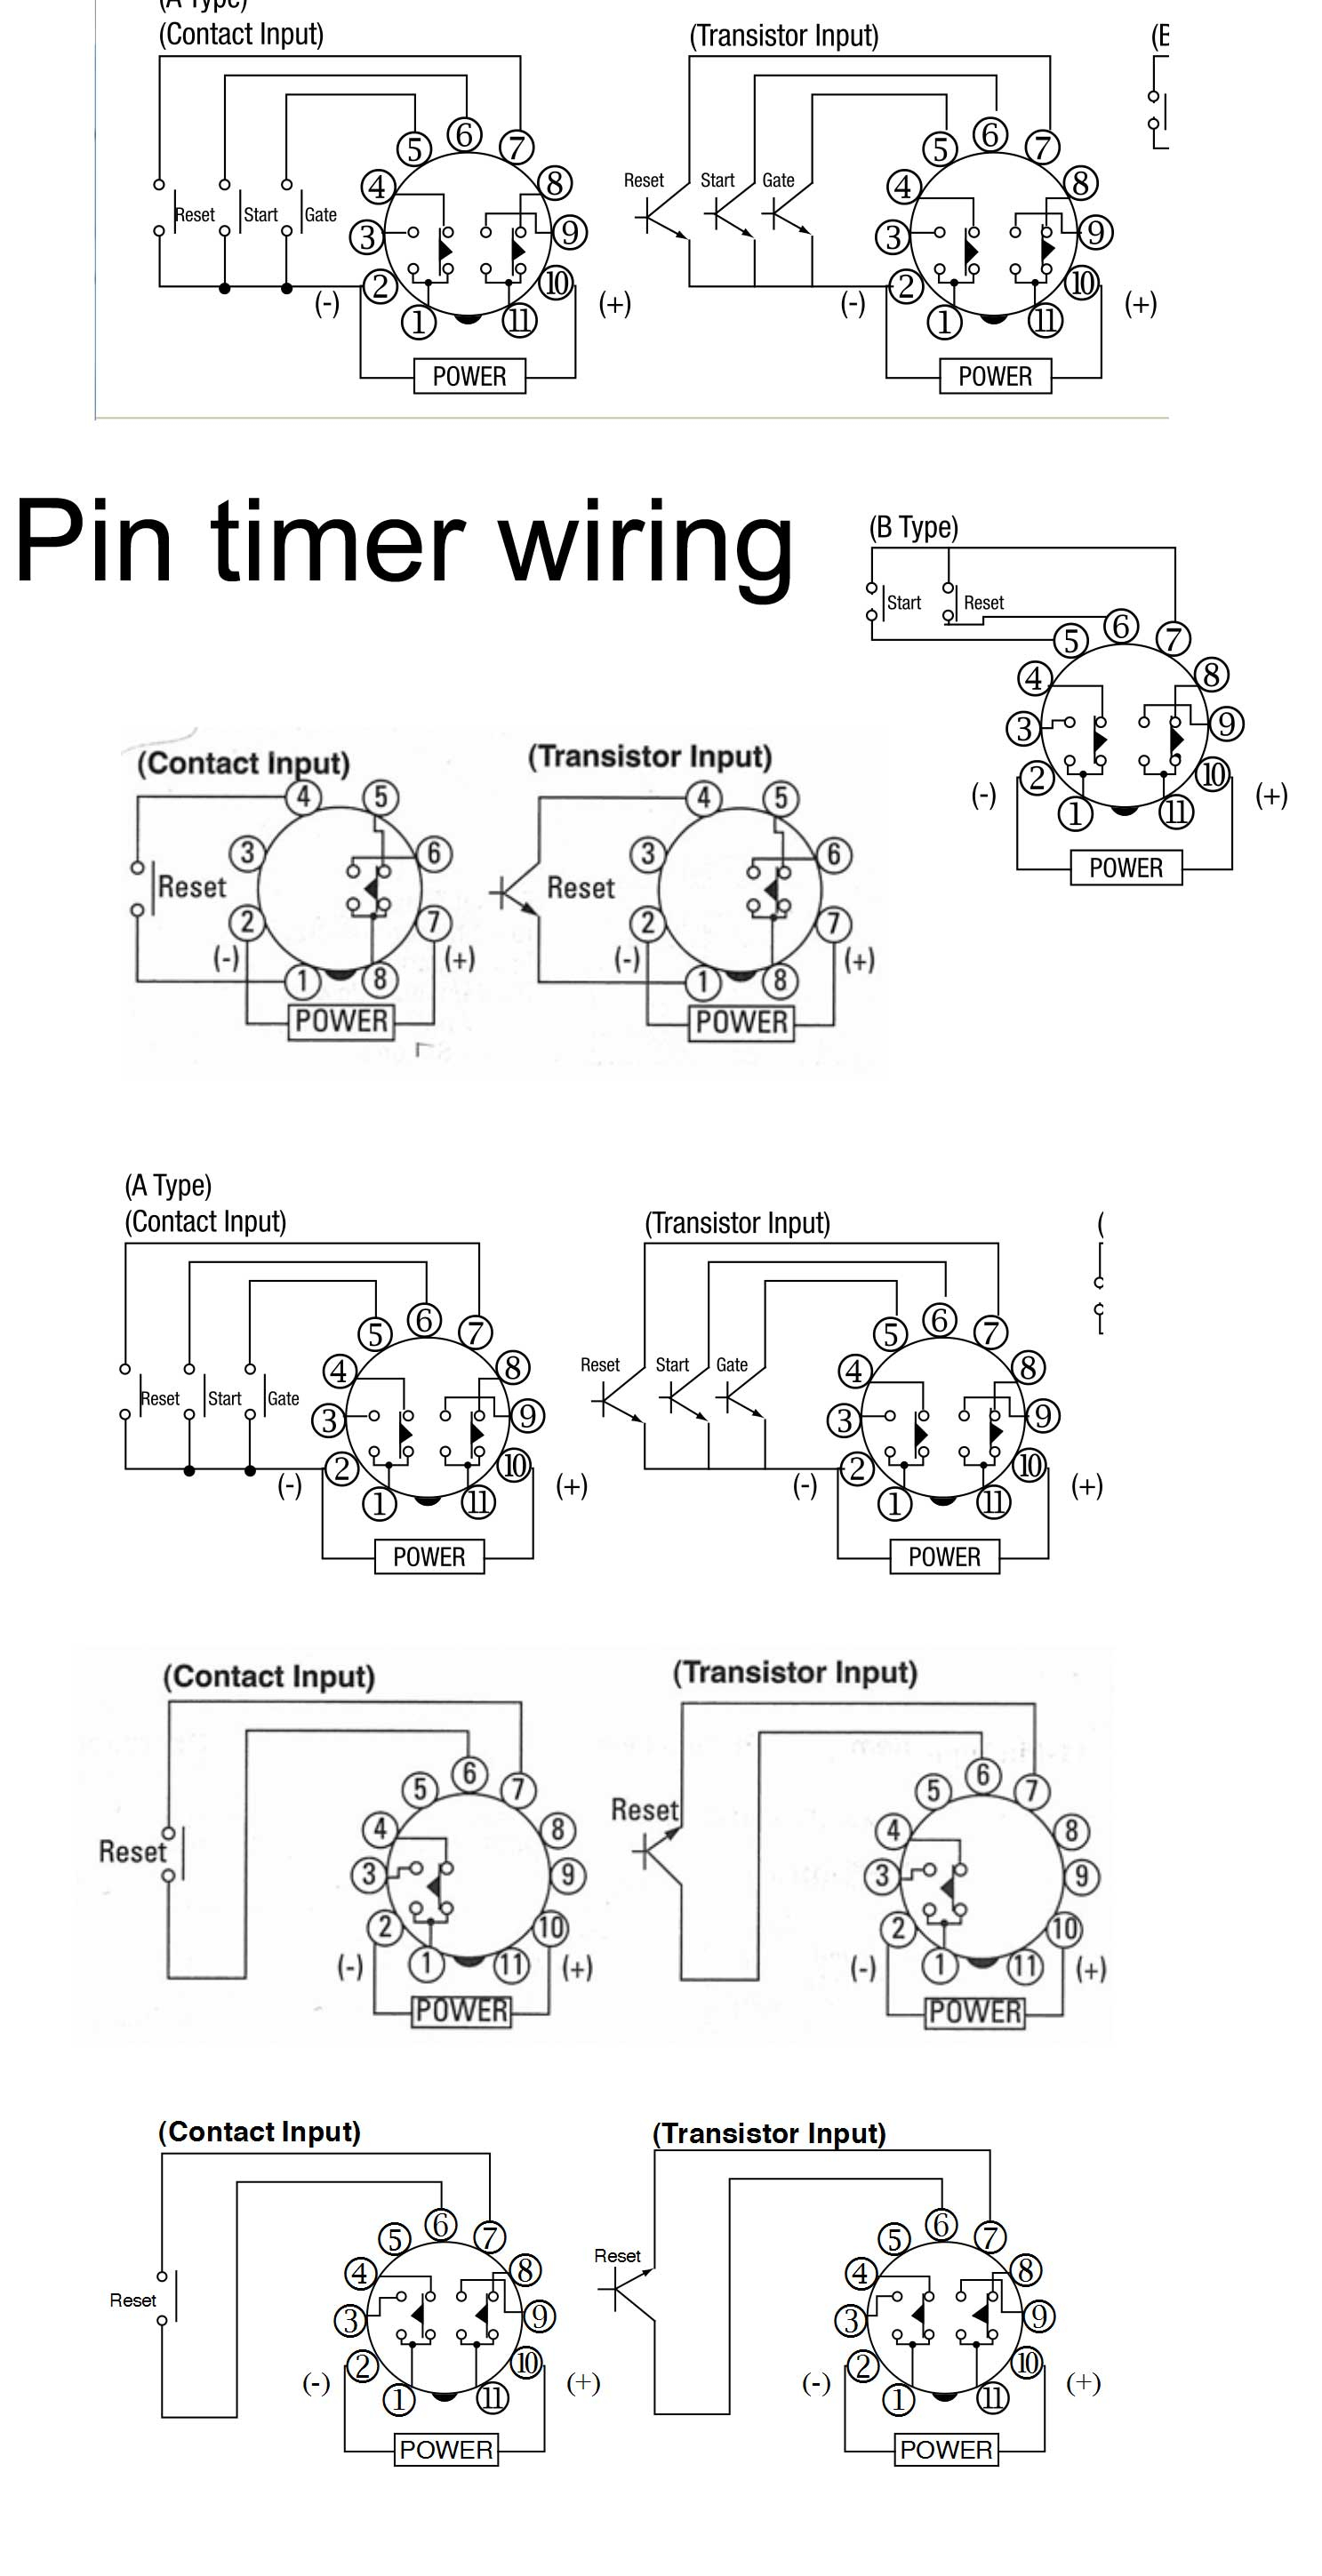 dayton time delay relay wiring diagram download | wiring ... 12 volt headlight relay wiring diagrams